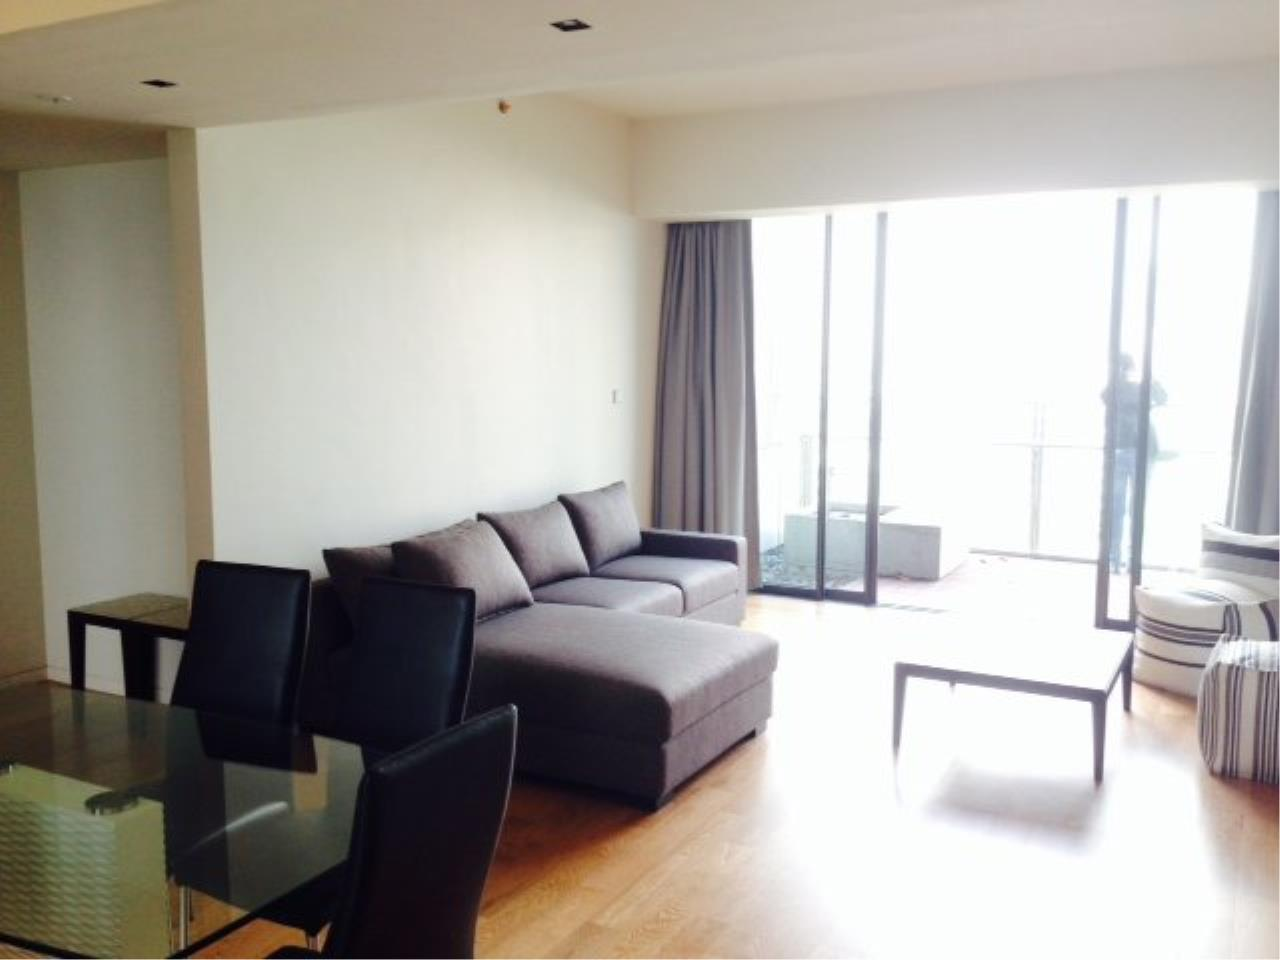 Piri Property Agency's Fully furnished Condo in The Met Sathorn for Sale - Nice views on Sathorn 3